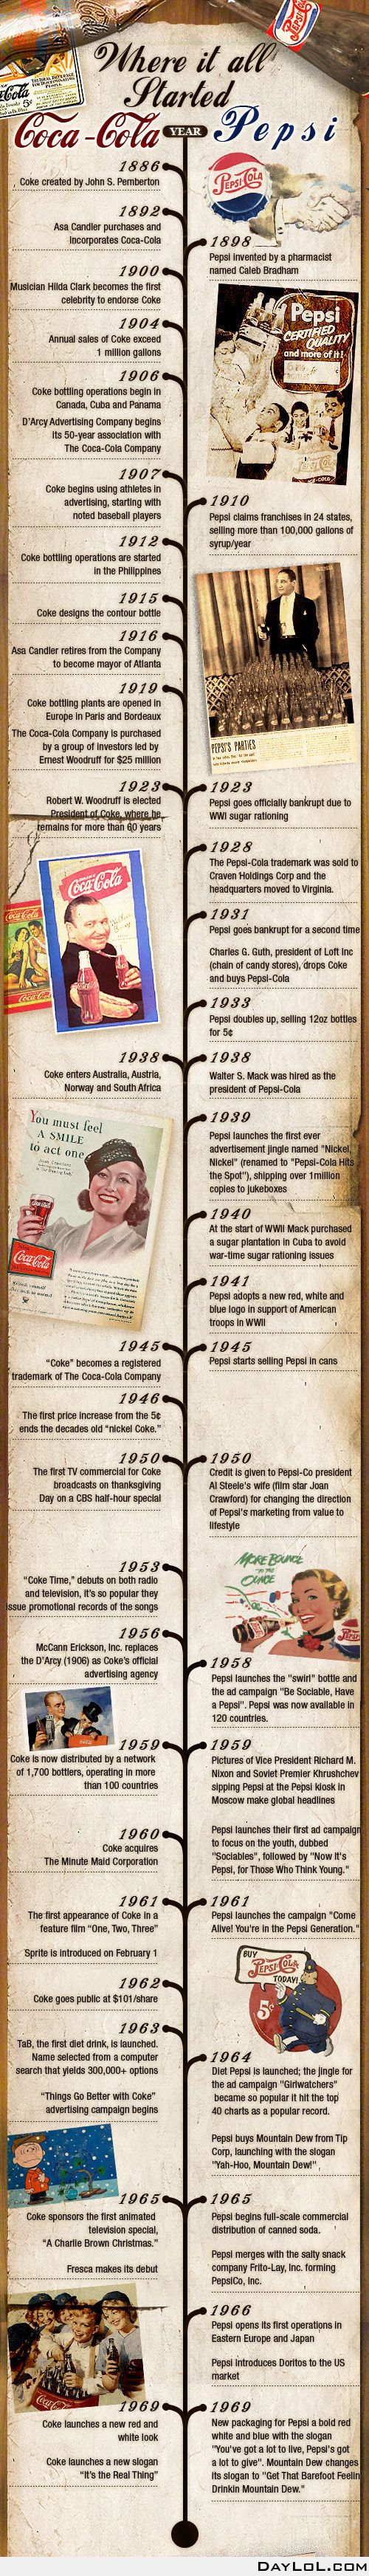 best pepsi cola images coke cola and advertising coca cola vs pepsi history and competition infographic